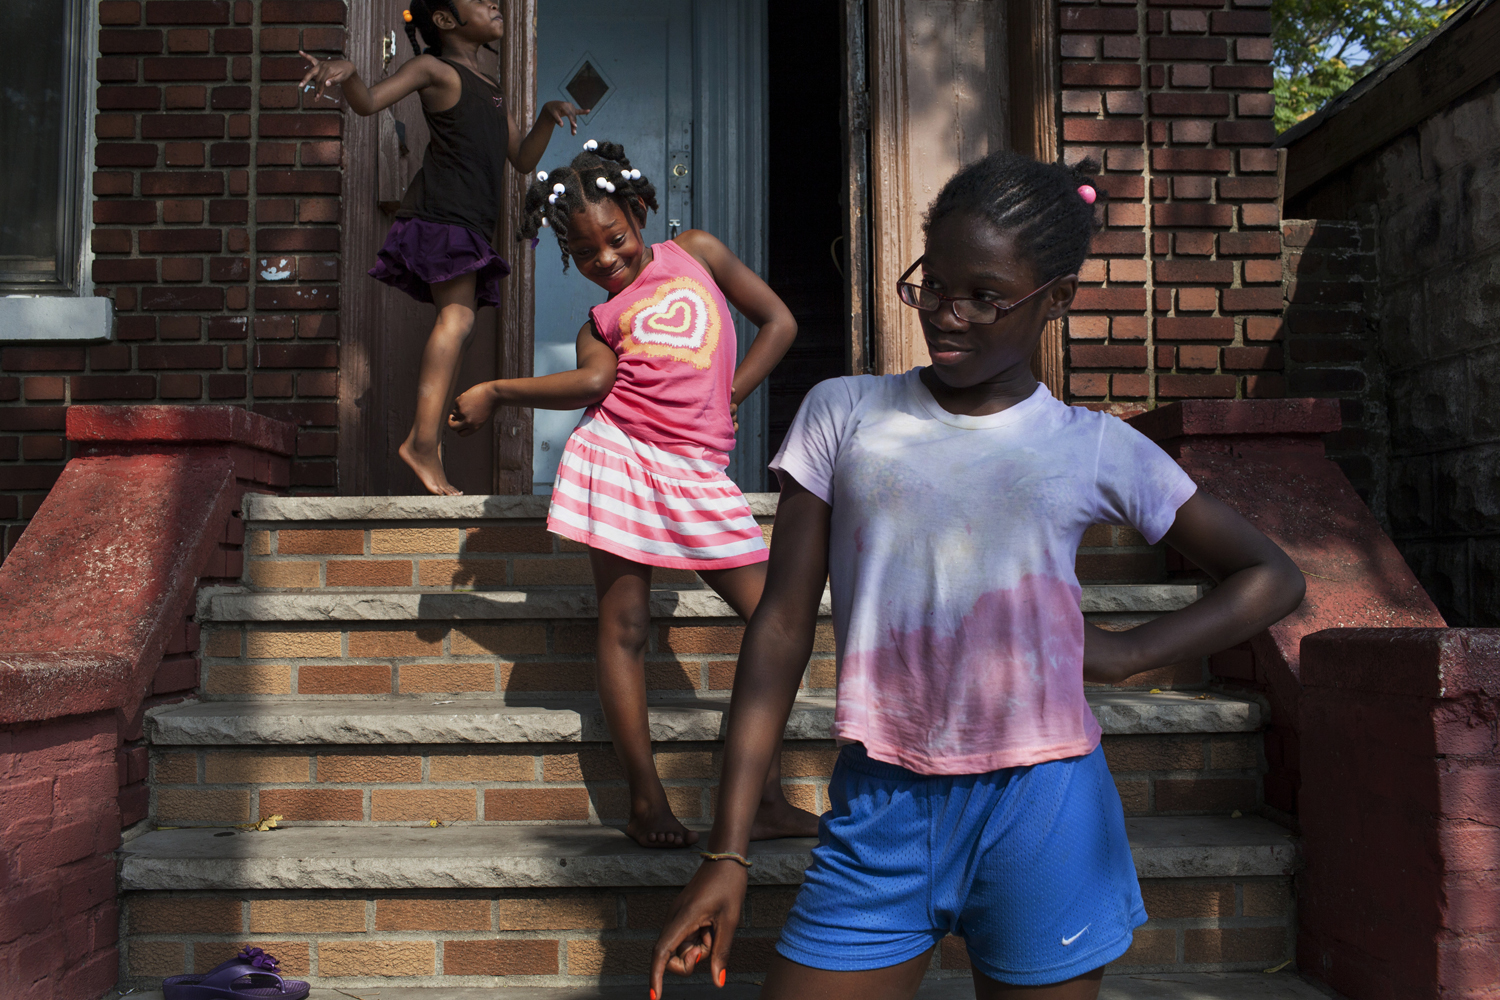 August 21, 2013. Flatbush, Brooklyn. Sarah's niece and her friends strike poses on the stoop of Sarah's home on a summer afternoon.  Dancehall dancers often site their dance abilities as part of their Caribbean heritage. Young girls start to learn some of the less suggestive dance moves in a dance hall queen's repertoire very young, but Sarah's niece giggle and exclaims  We're too young!  when asked if she can dance like her auntie. Two months later, Sarah will be shot in the foot just a few feet from this stoop.